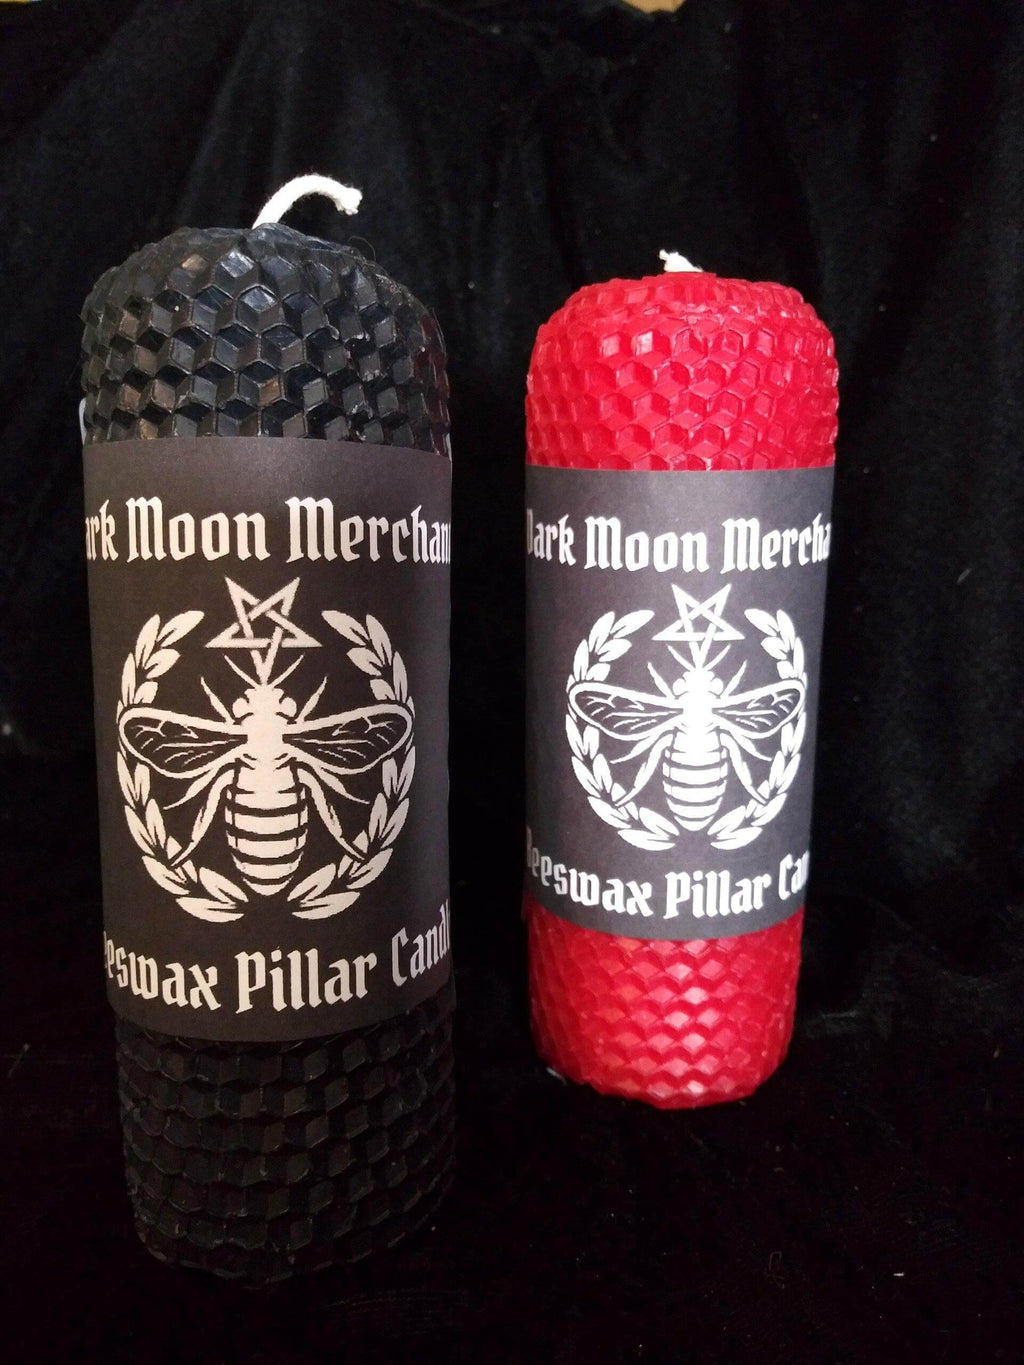 Beeswax Pillar Ritual Candles